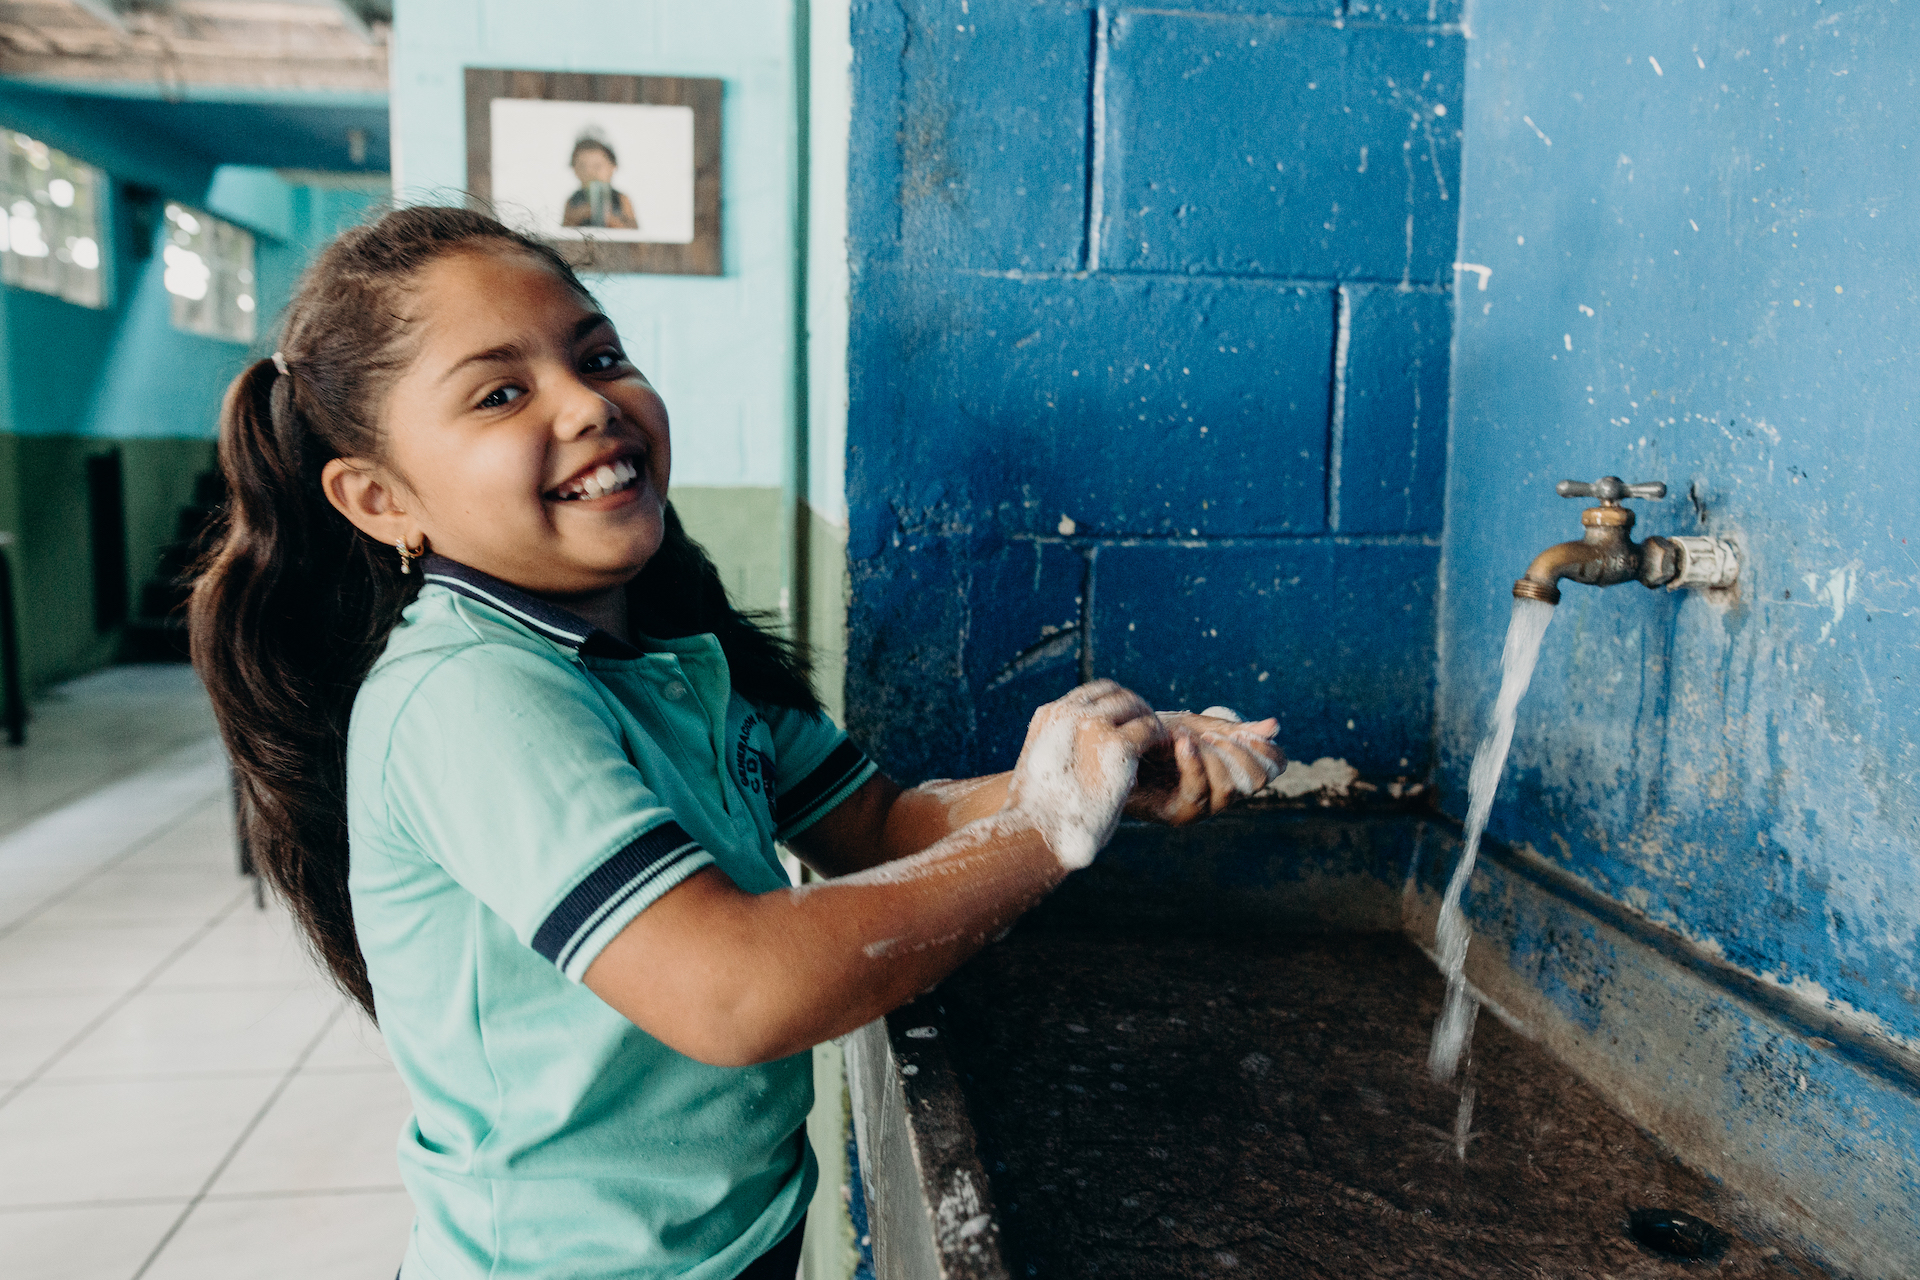 A girl washing her hands at a sink in El Salvador